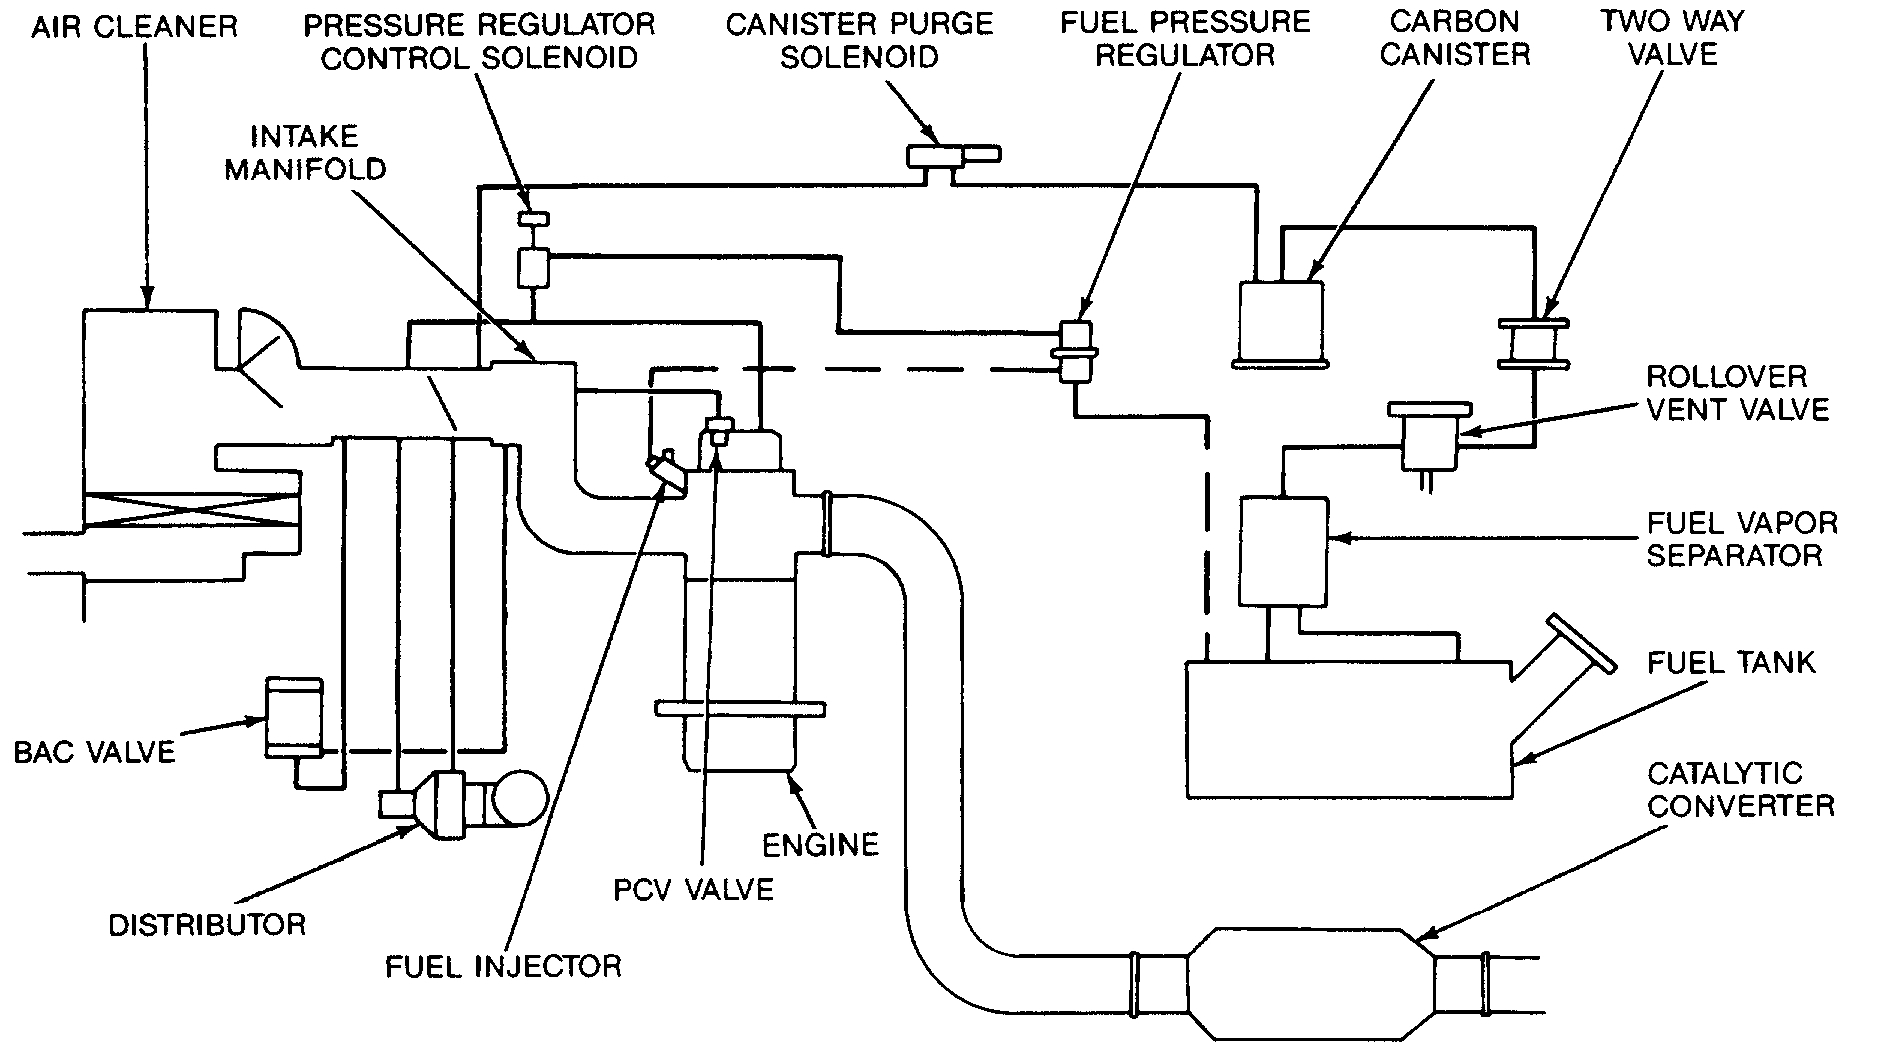 Need a Diagram of Engine Vacuum Lines Connections